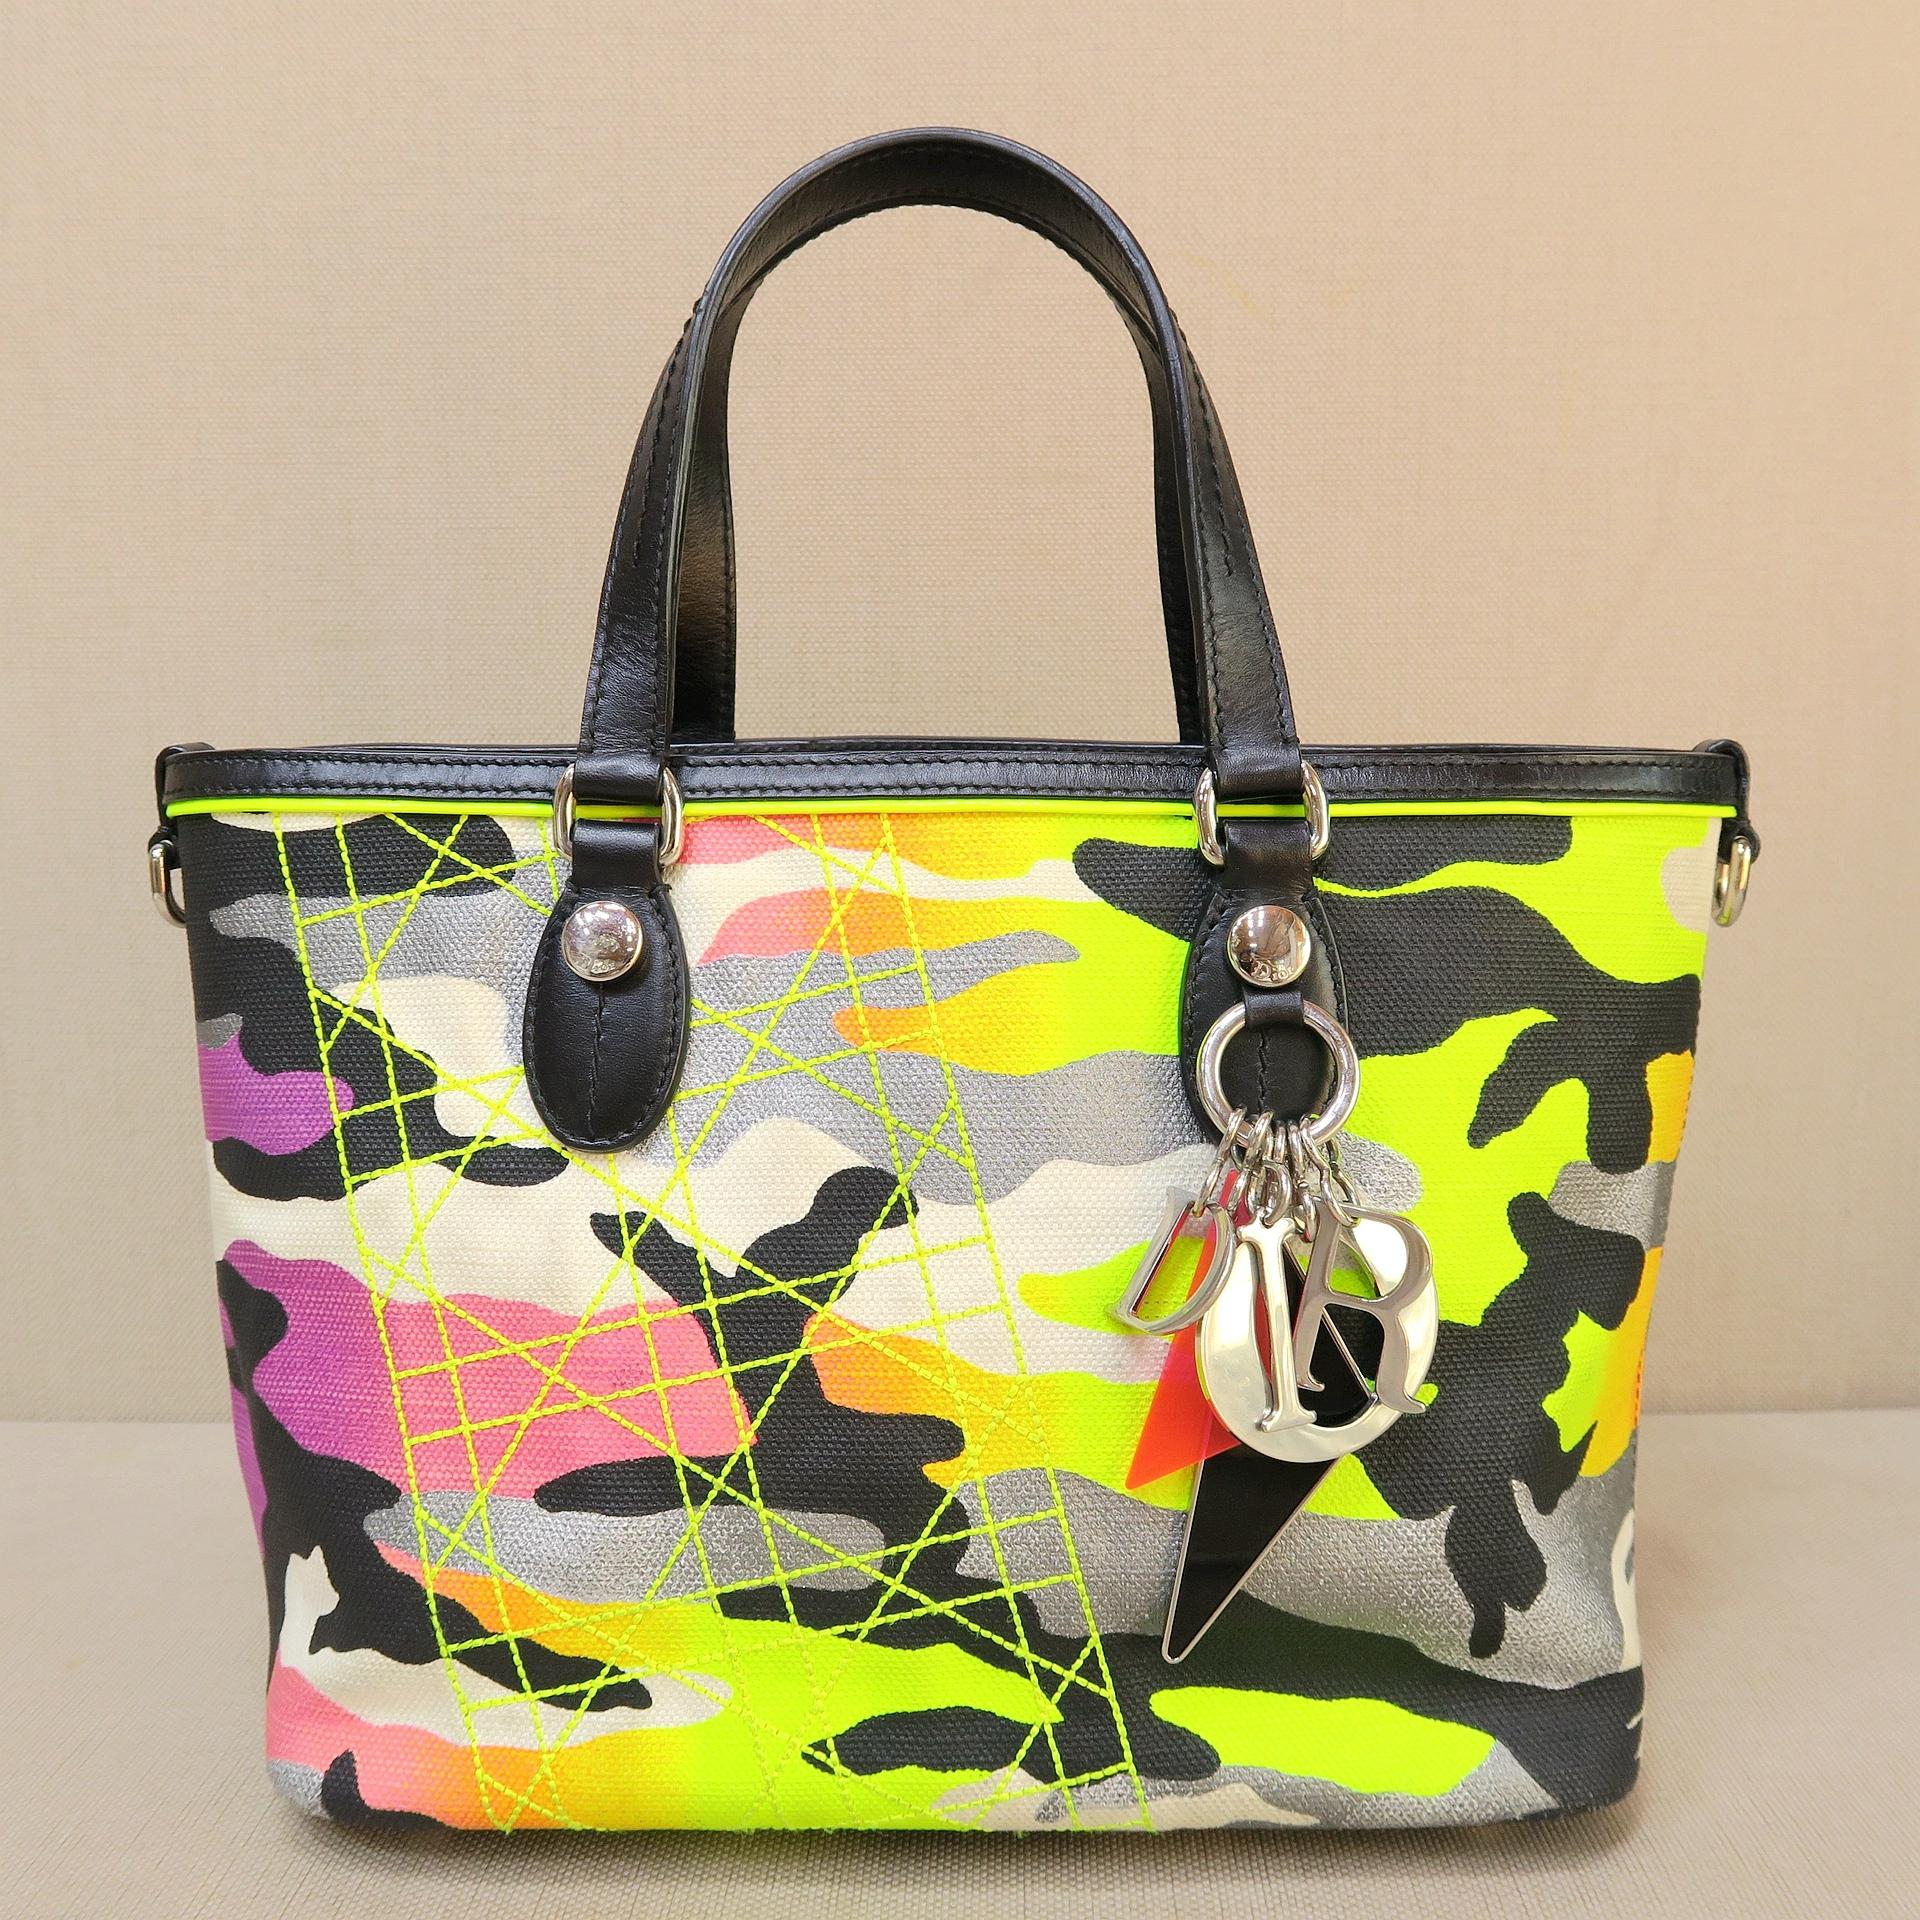 Dior Christian Limited Anselm Reyl Camouflage Yellow and ...